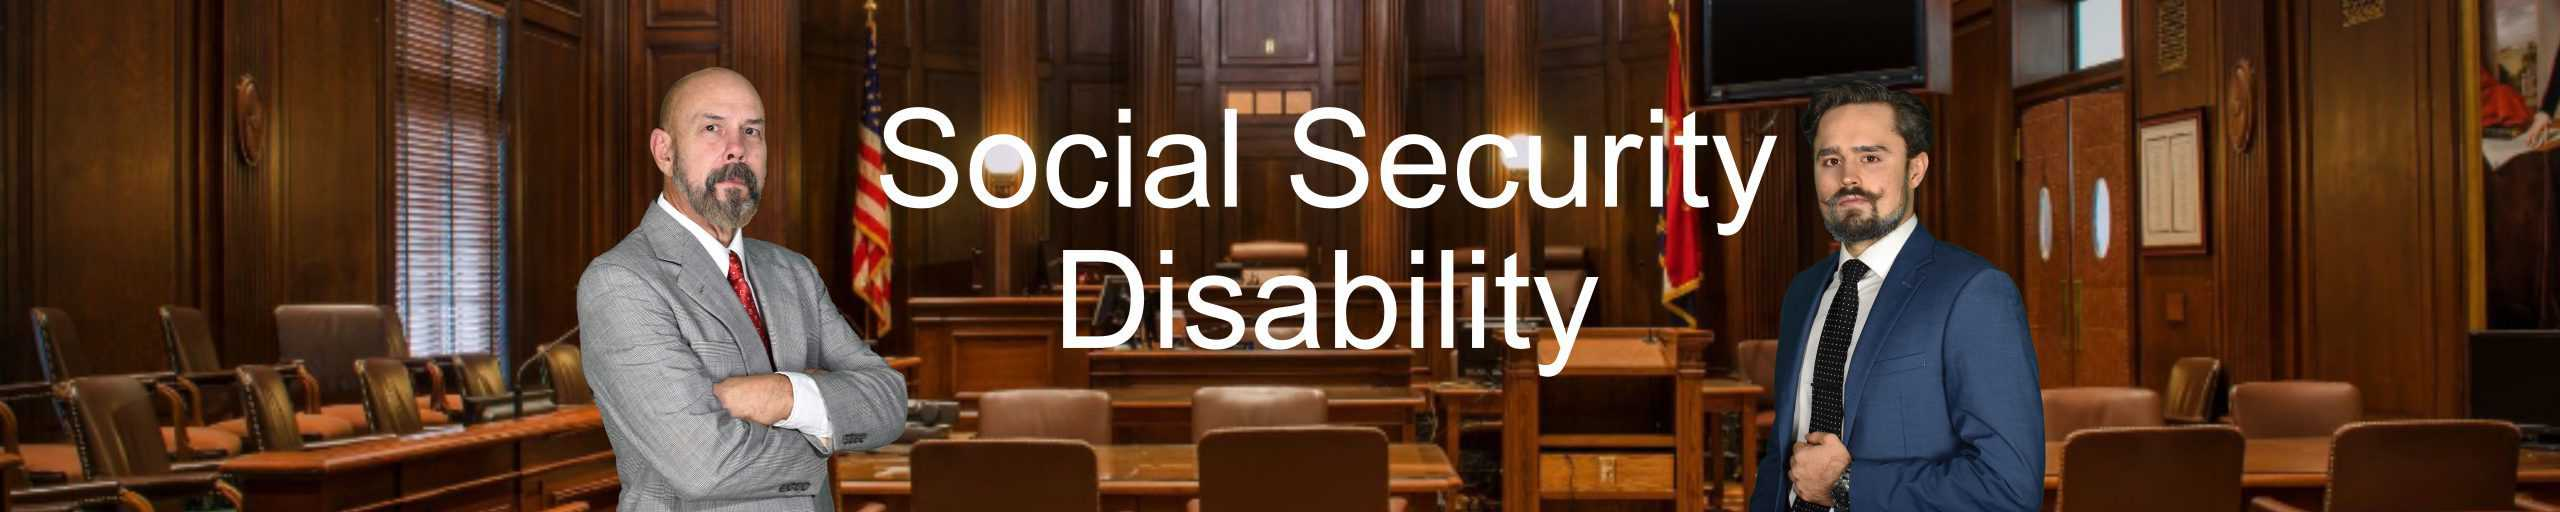 Social-Secuirty-Disability-Lawyer-Attorney-Case